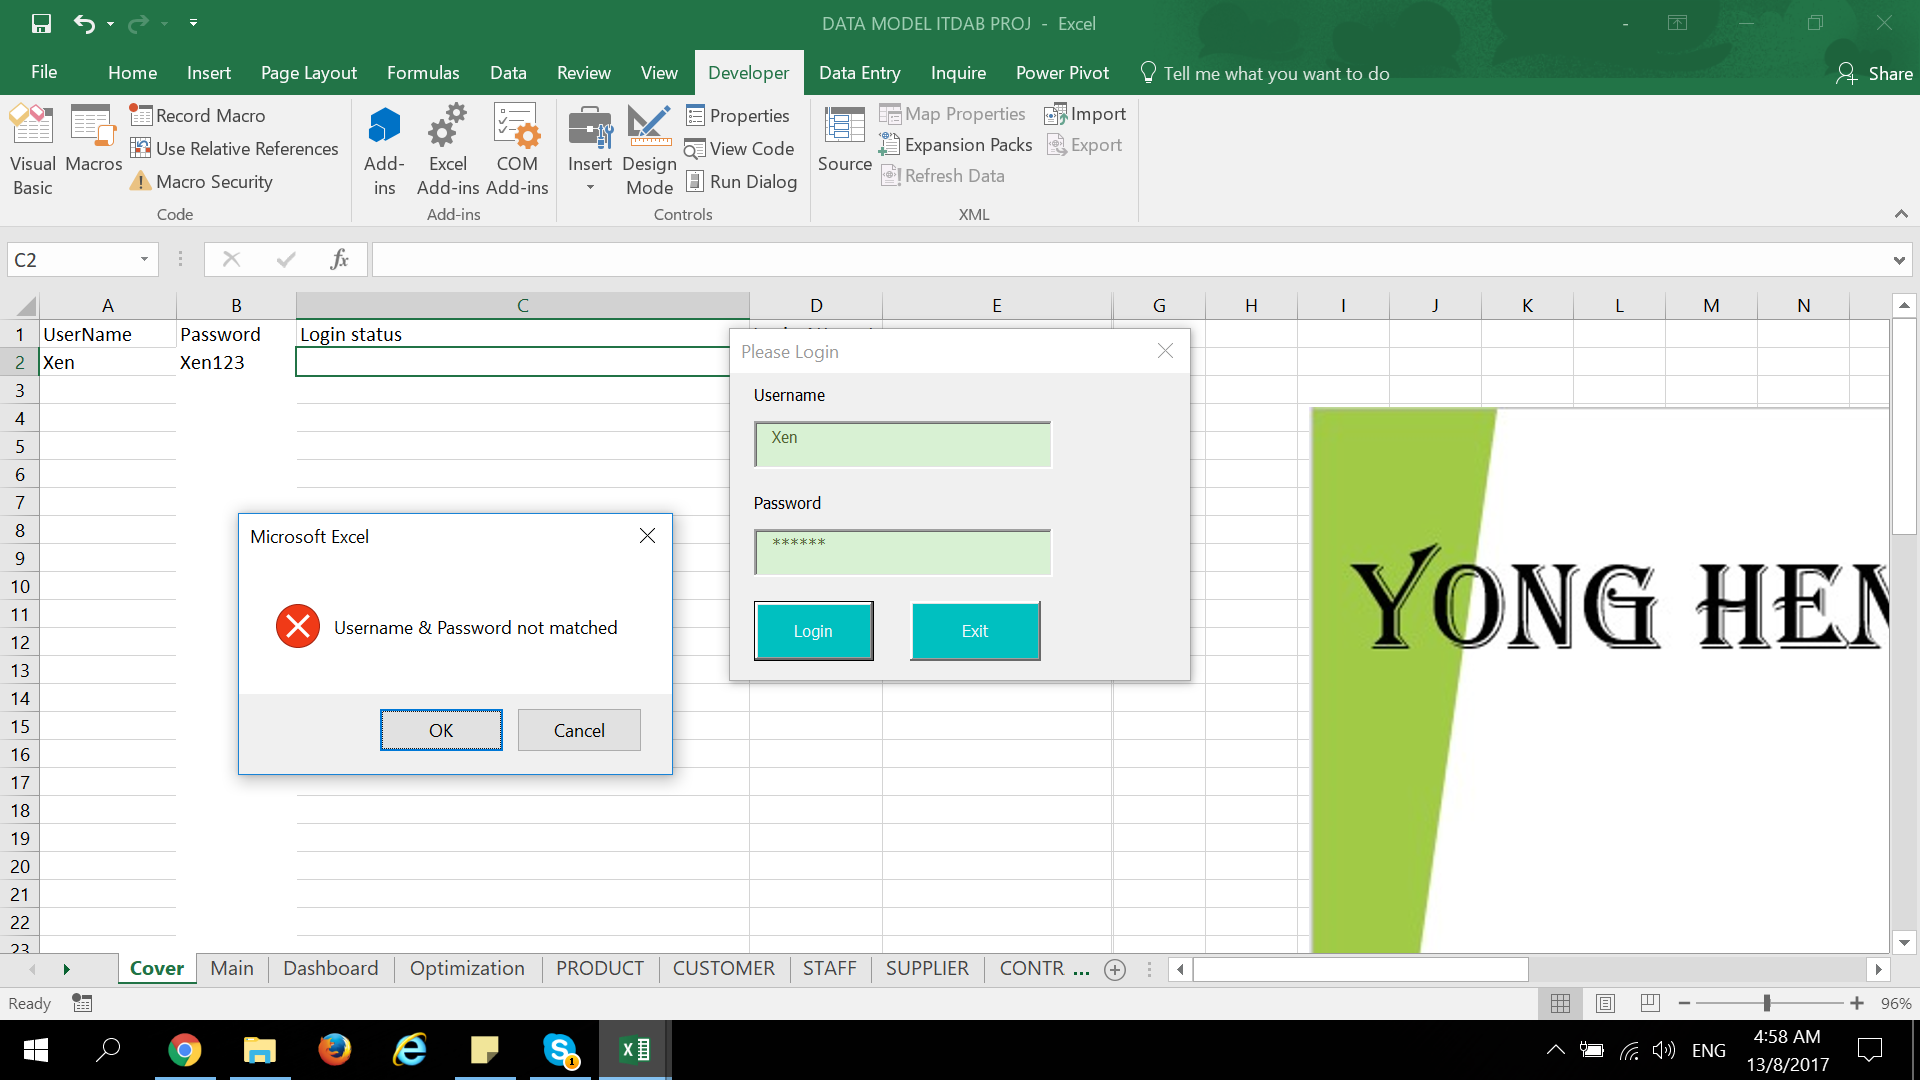 dim objexcelapp as excel.application